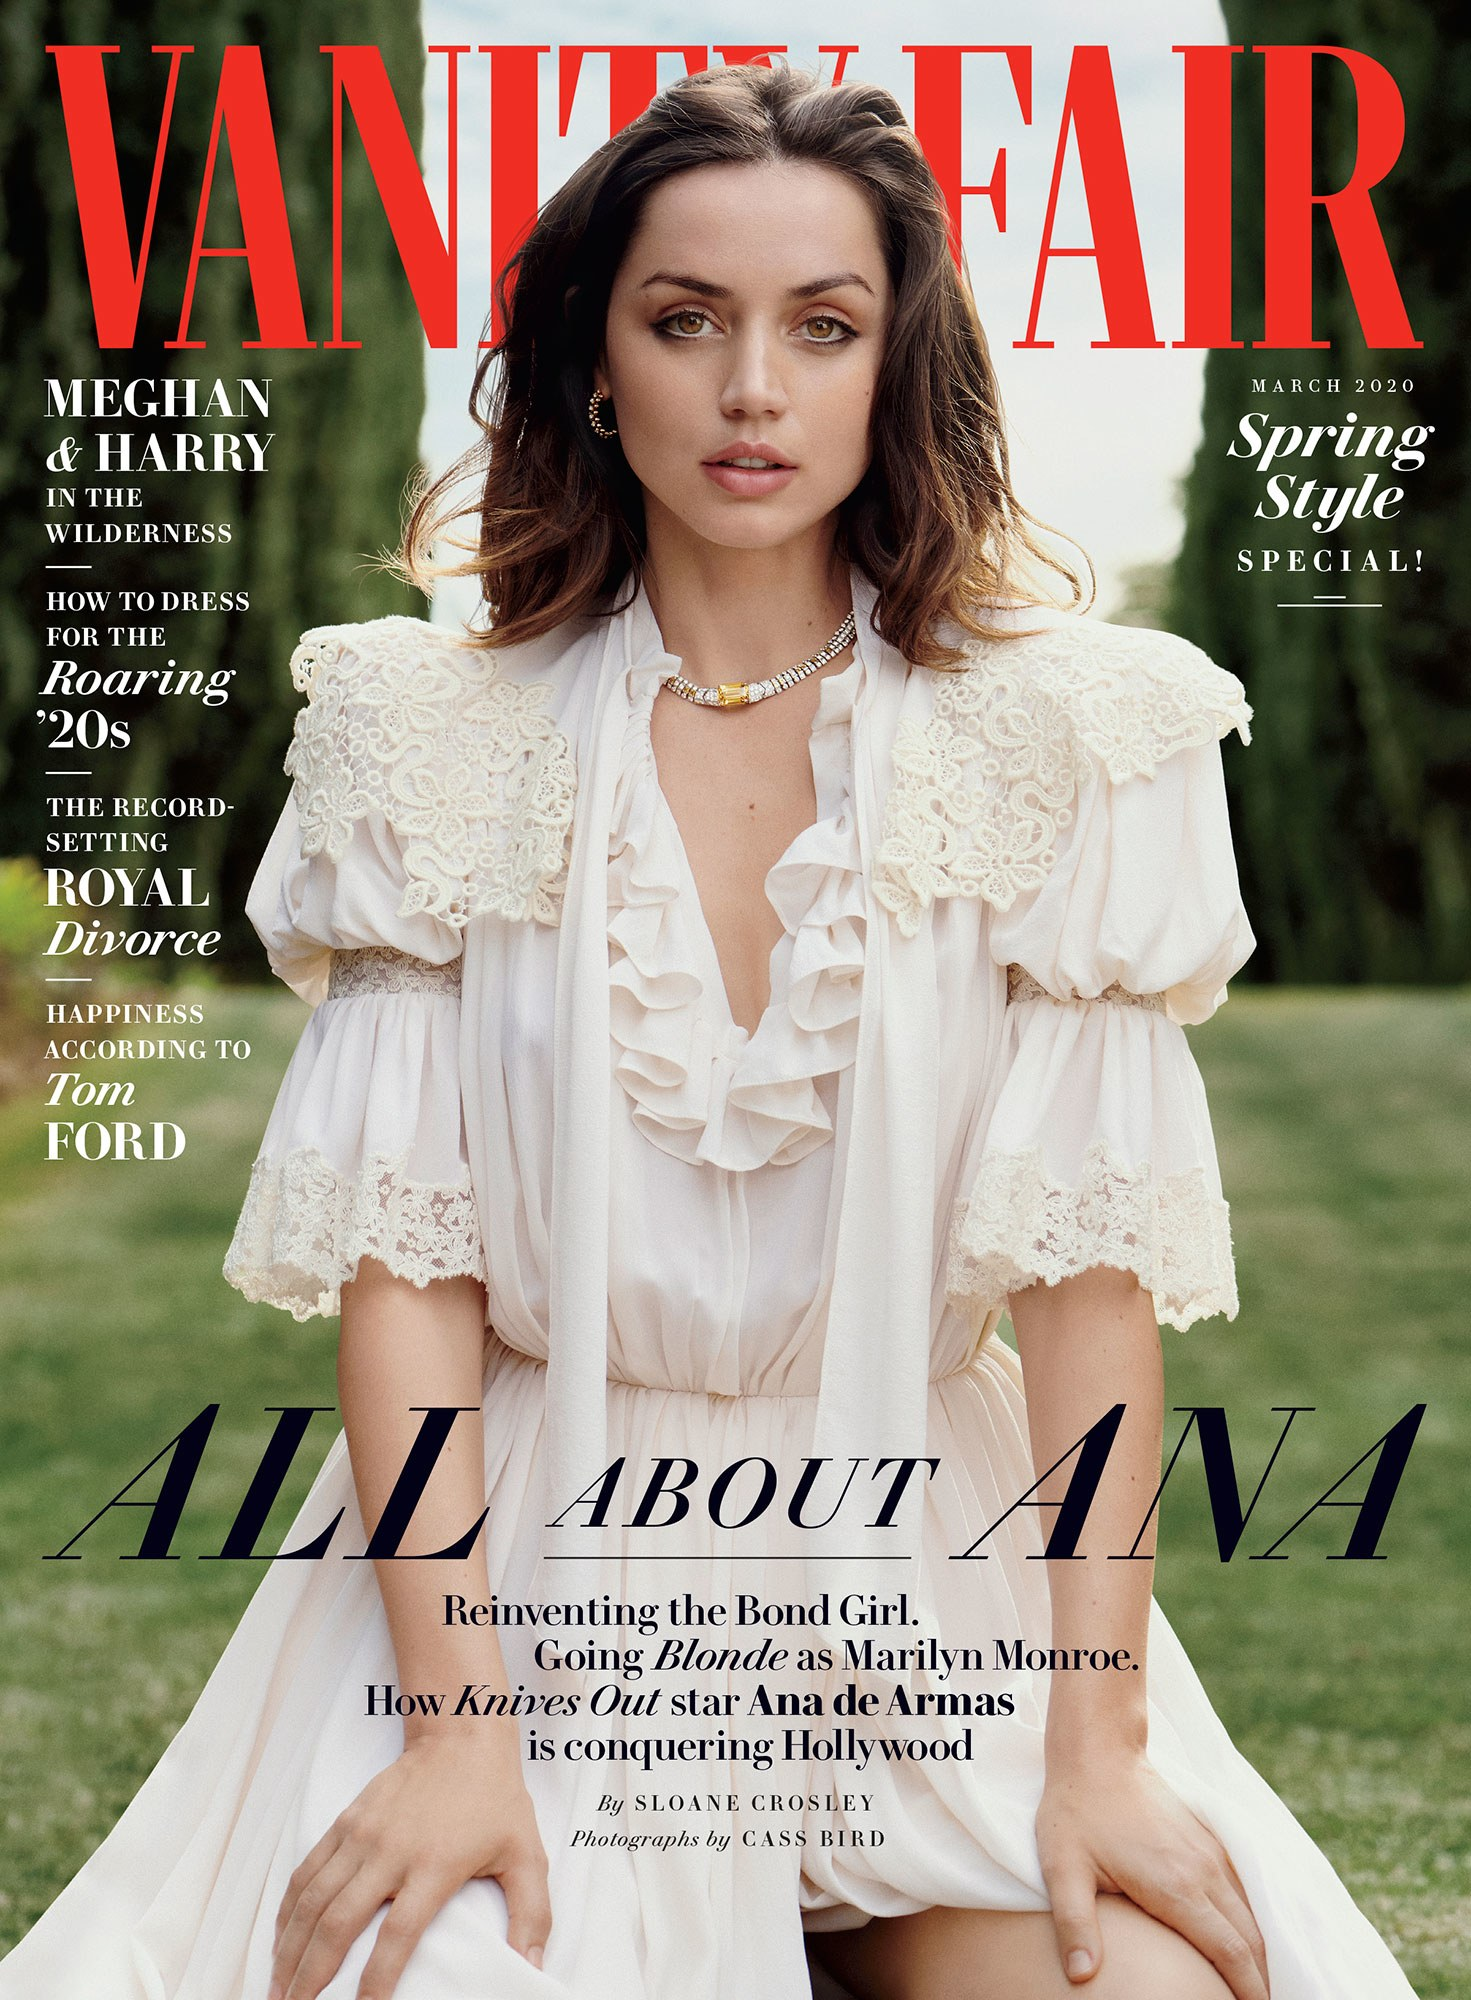 The March 8 Magazine Covers We Loved and Hated - theFashionSpot